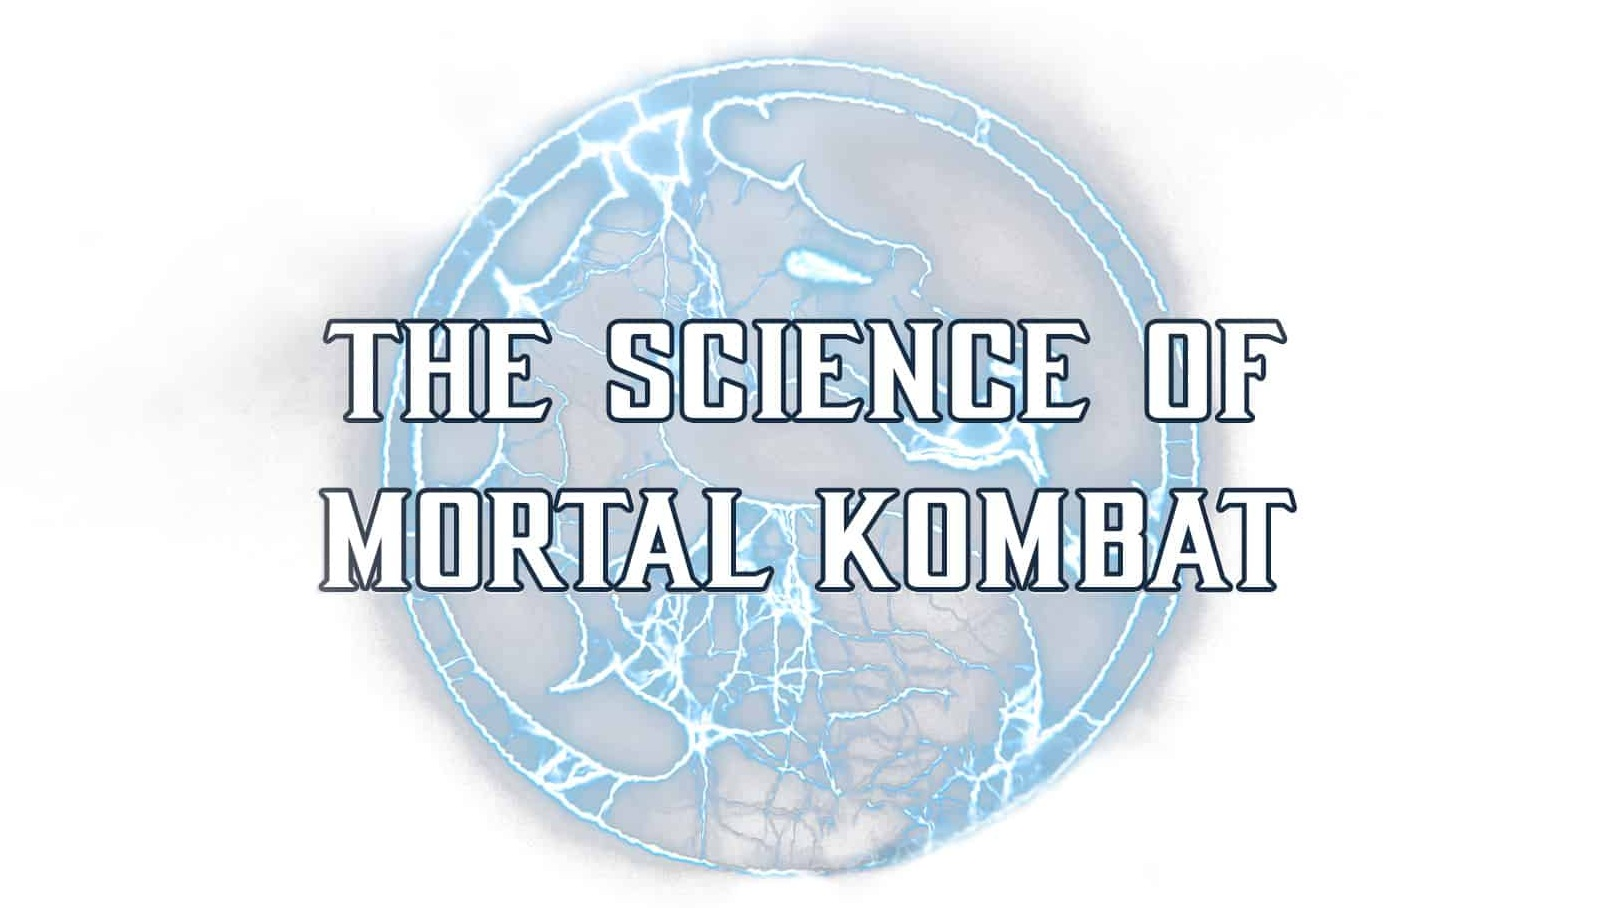 Science-of-Mortal-Kombat-logo.jpg